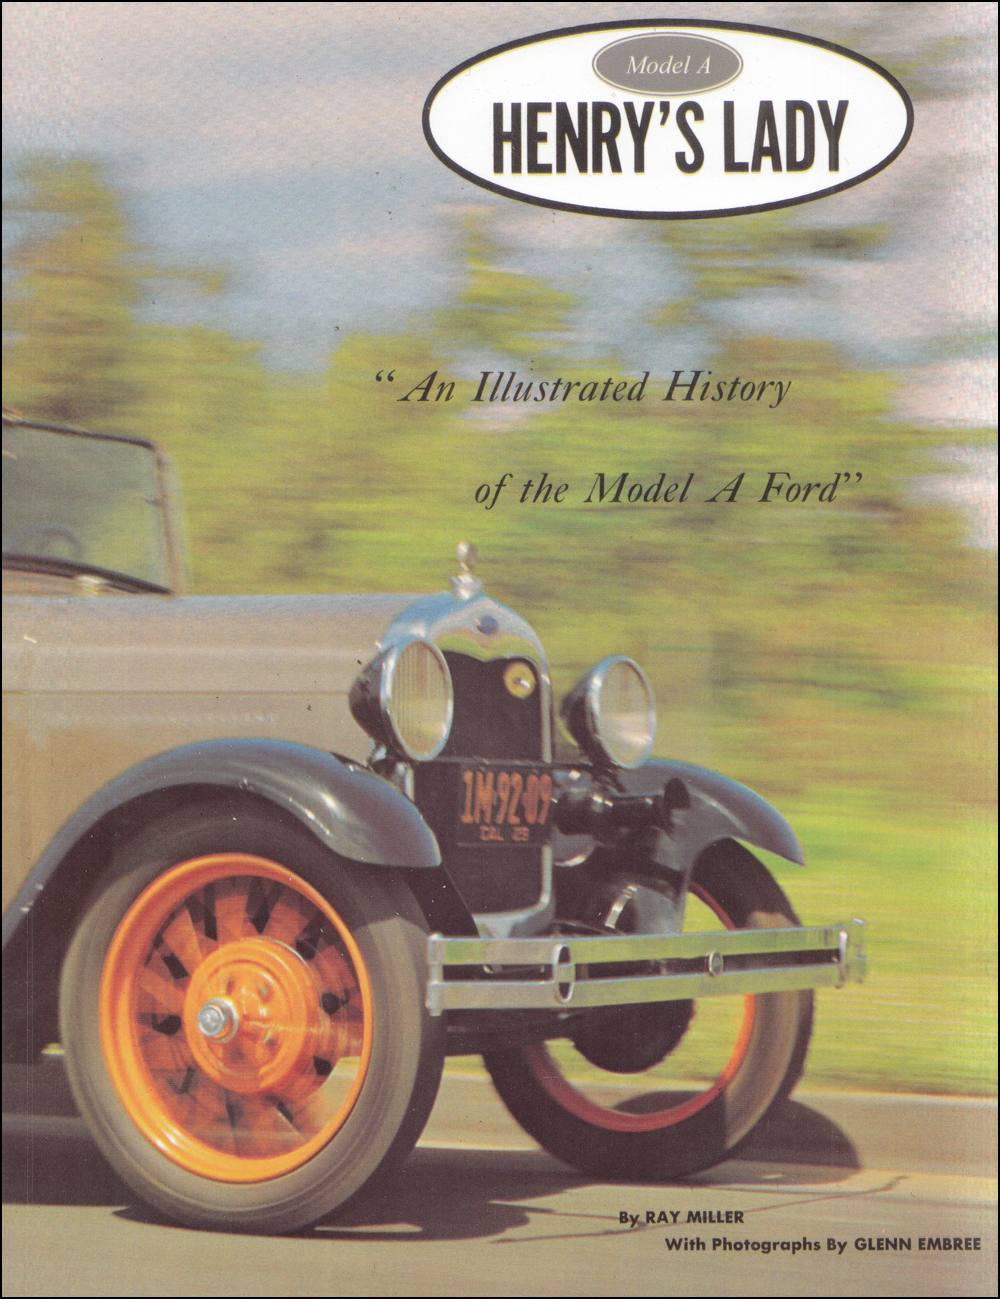 Henry's Lady Illustrated History Model A Ford Car Truck 19 body styles Paperback